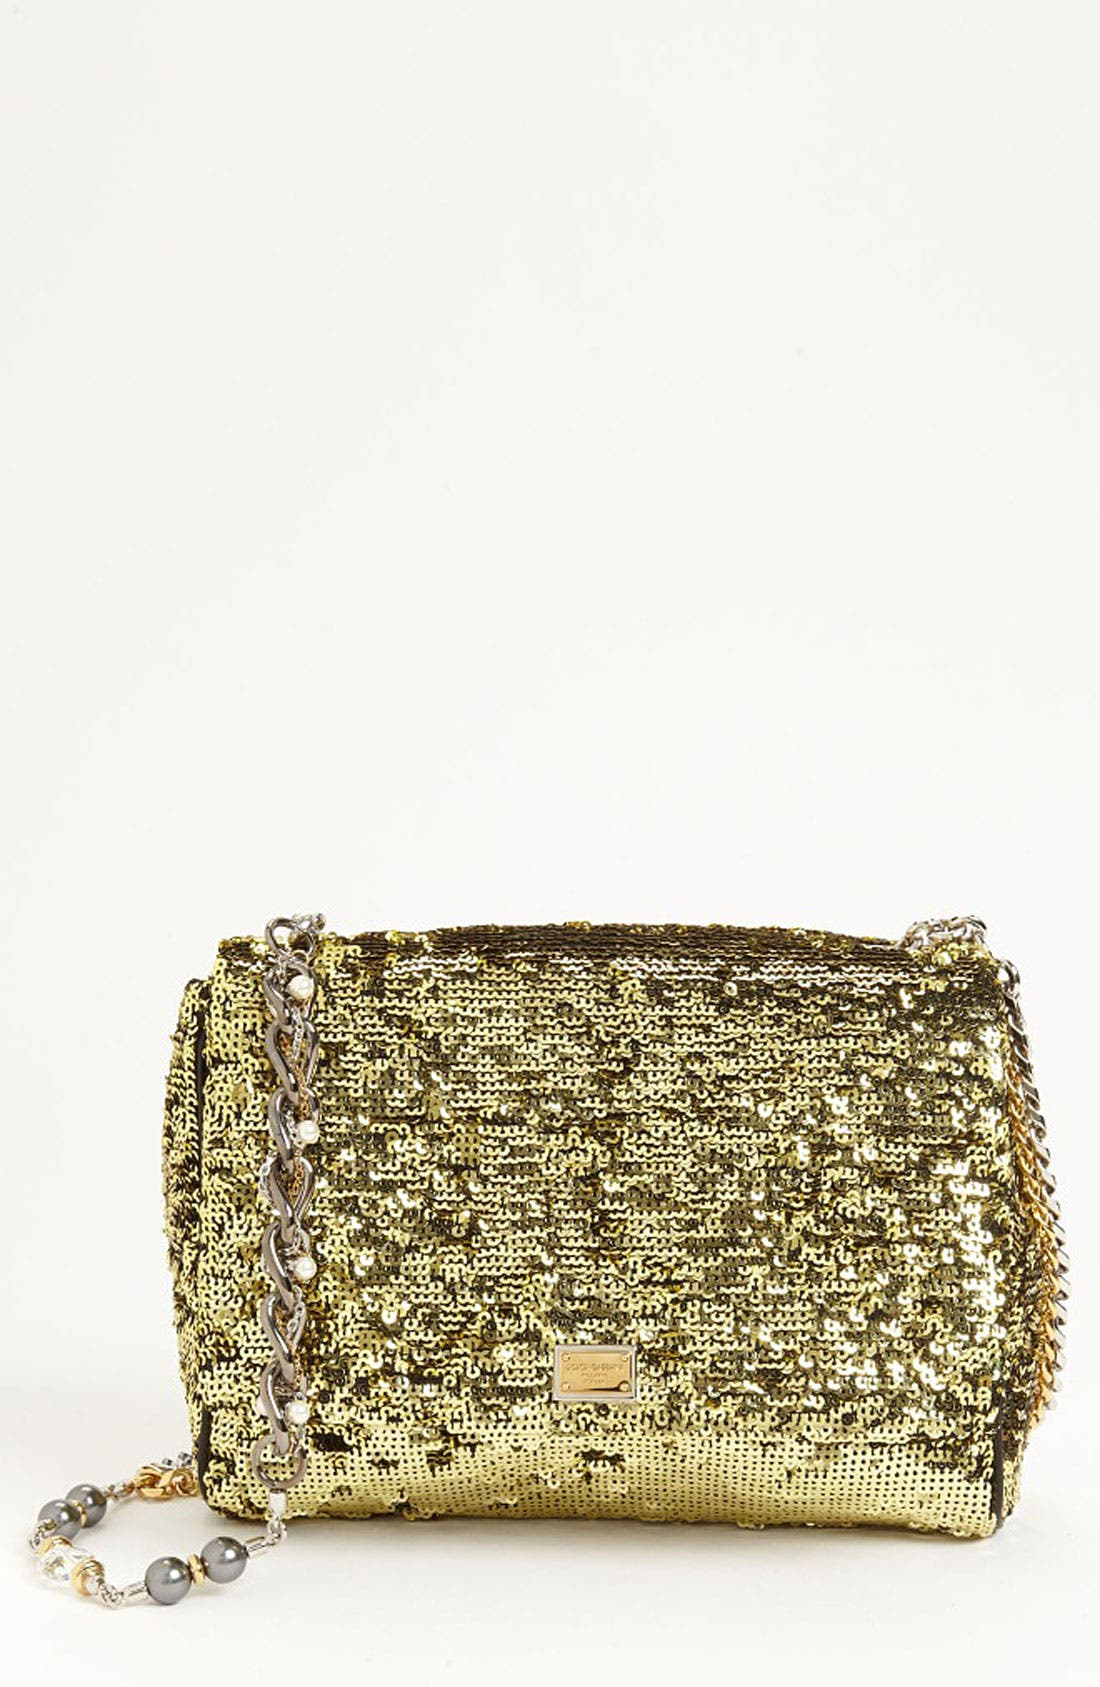 Main Image - Dolce&Gabbana 'Miss Charles' Sequin Shoulder Bag